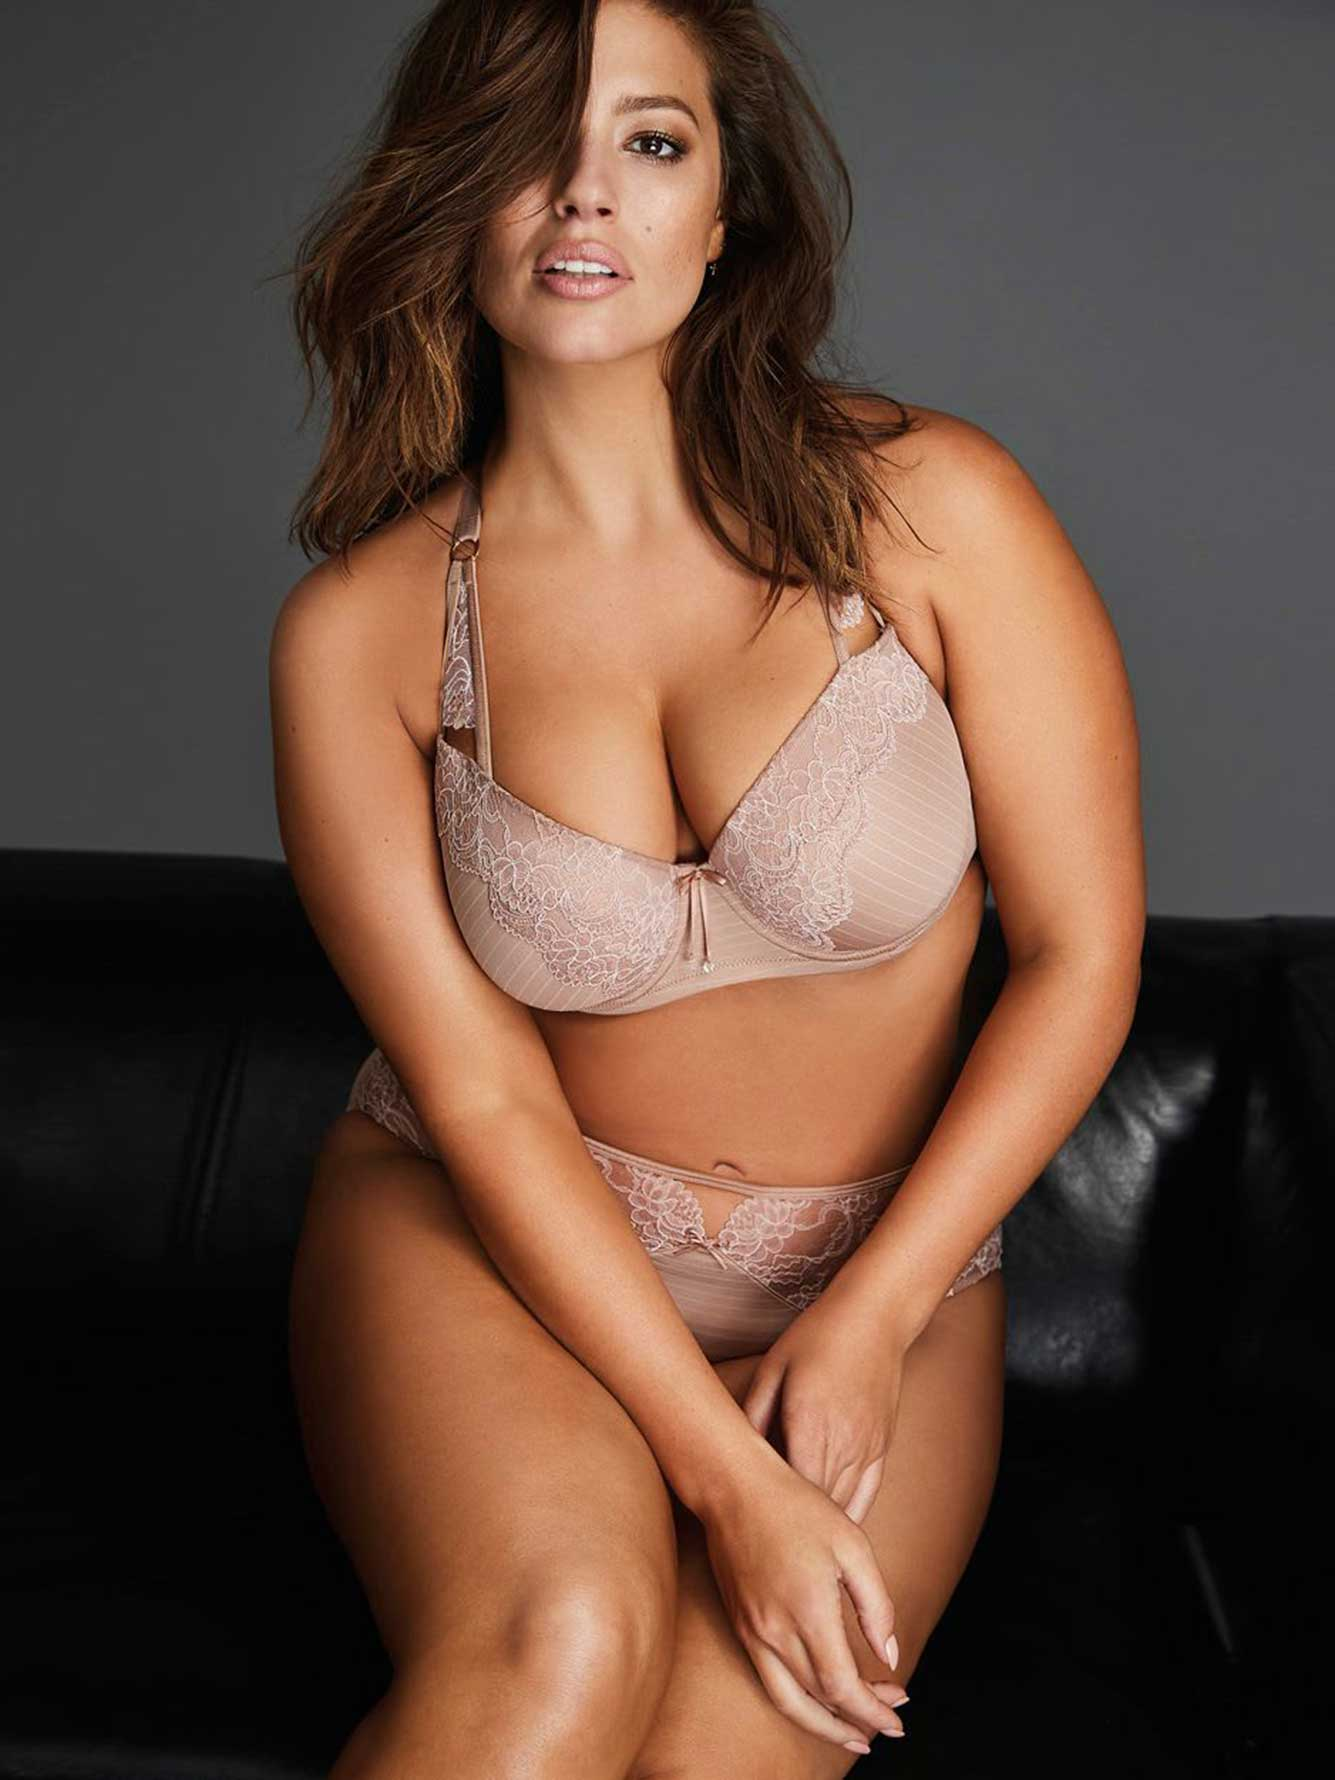 Soutien-gorge Virtuose à dentelle et rayures Ashley Graham